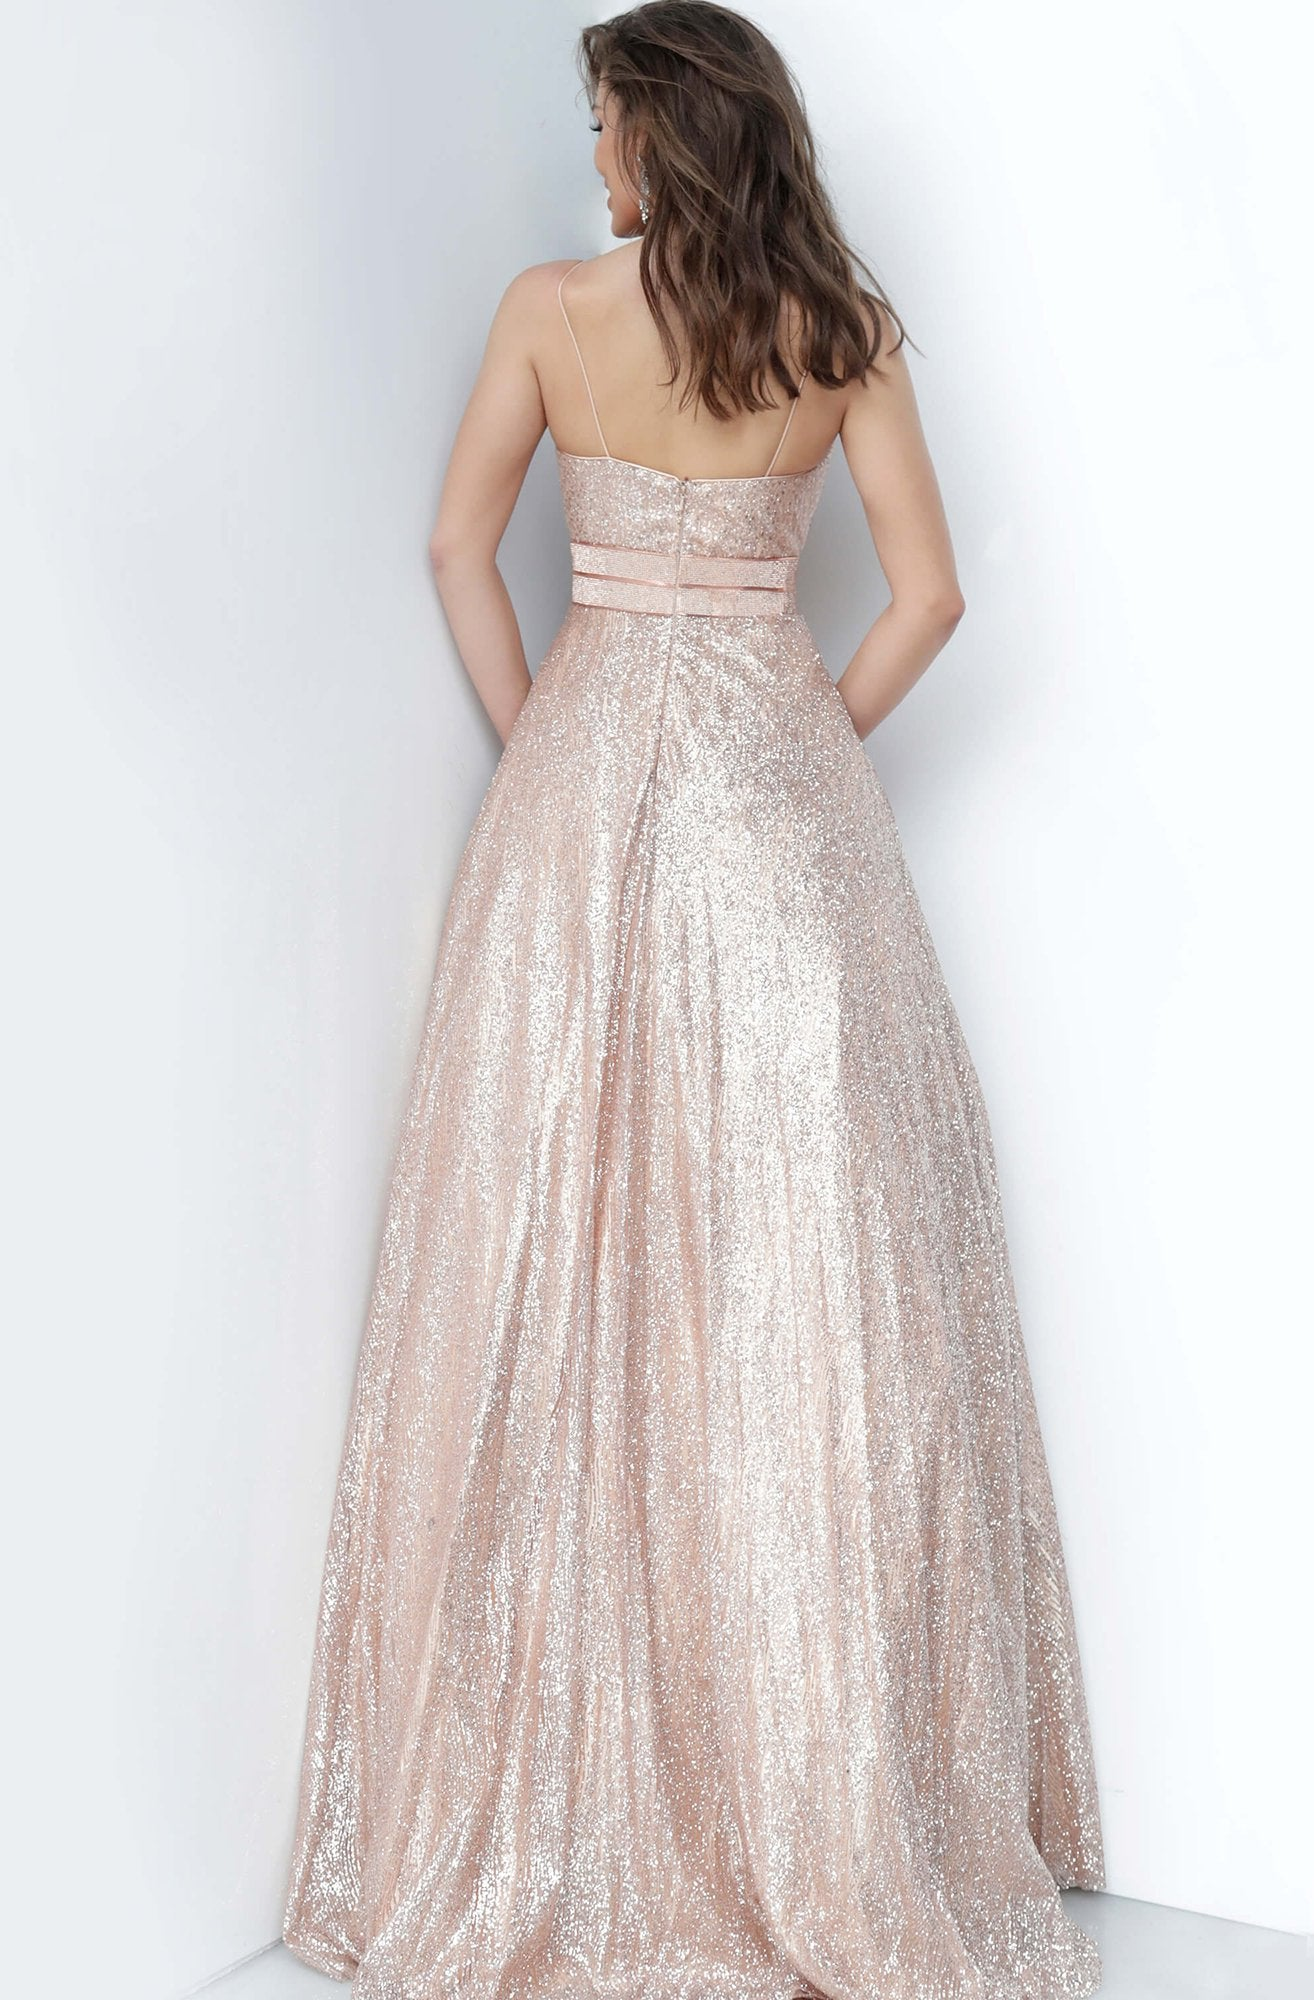 Jovani - 4660 Sweetheart Glittery A-Line Dress In Gold